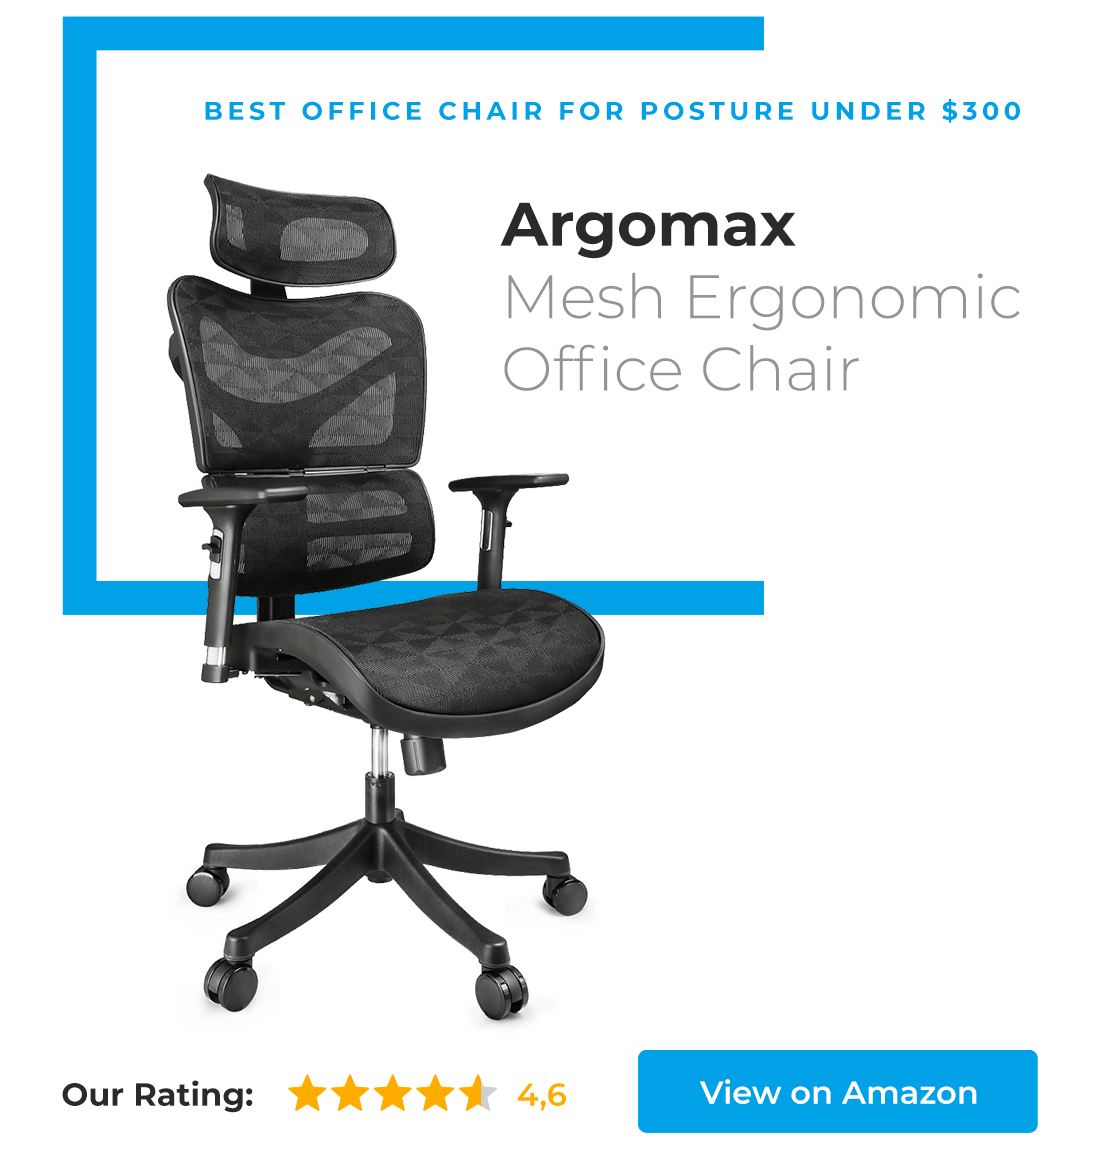 If You Have A Bit Ger Budget Can Also Consider Argomax Mesh Ergonomic Office Chair The Best For Lumbar Support Under 300